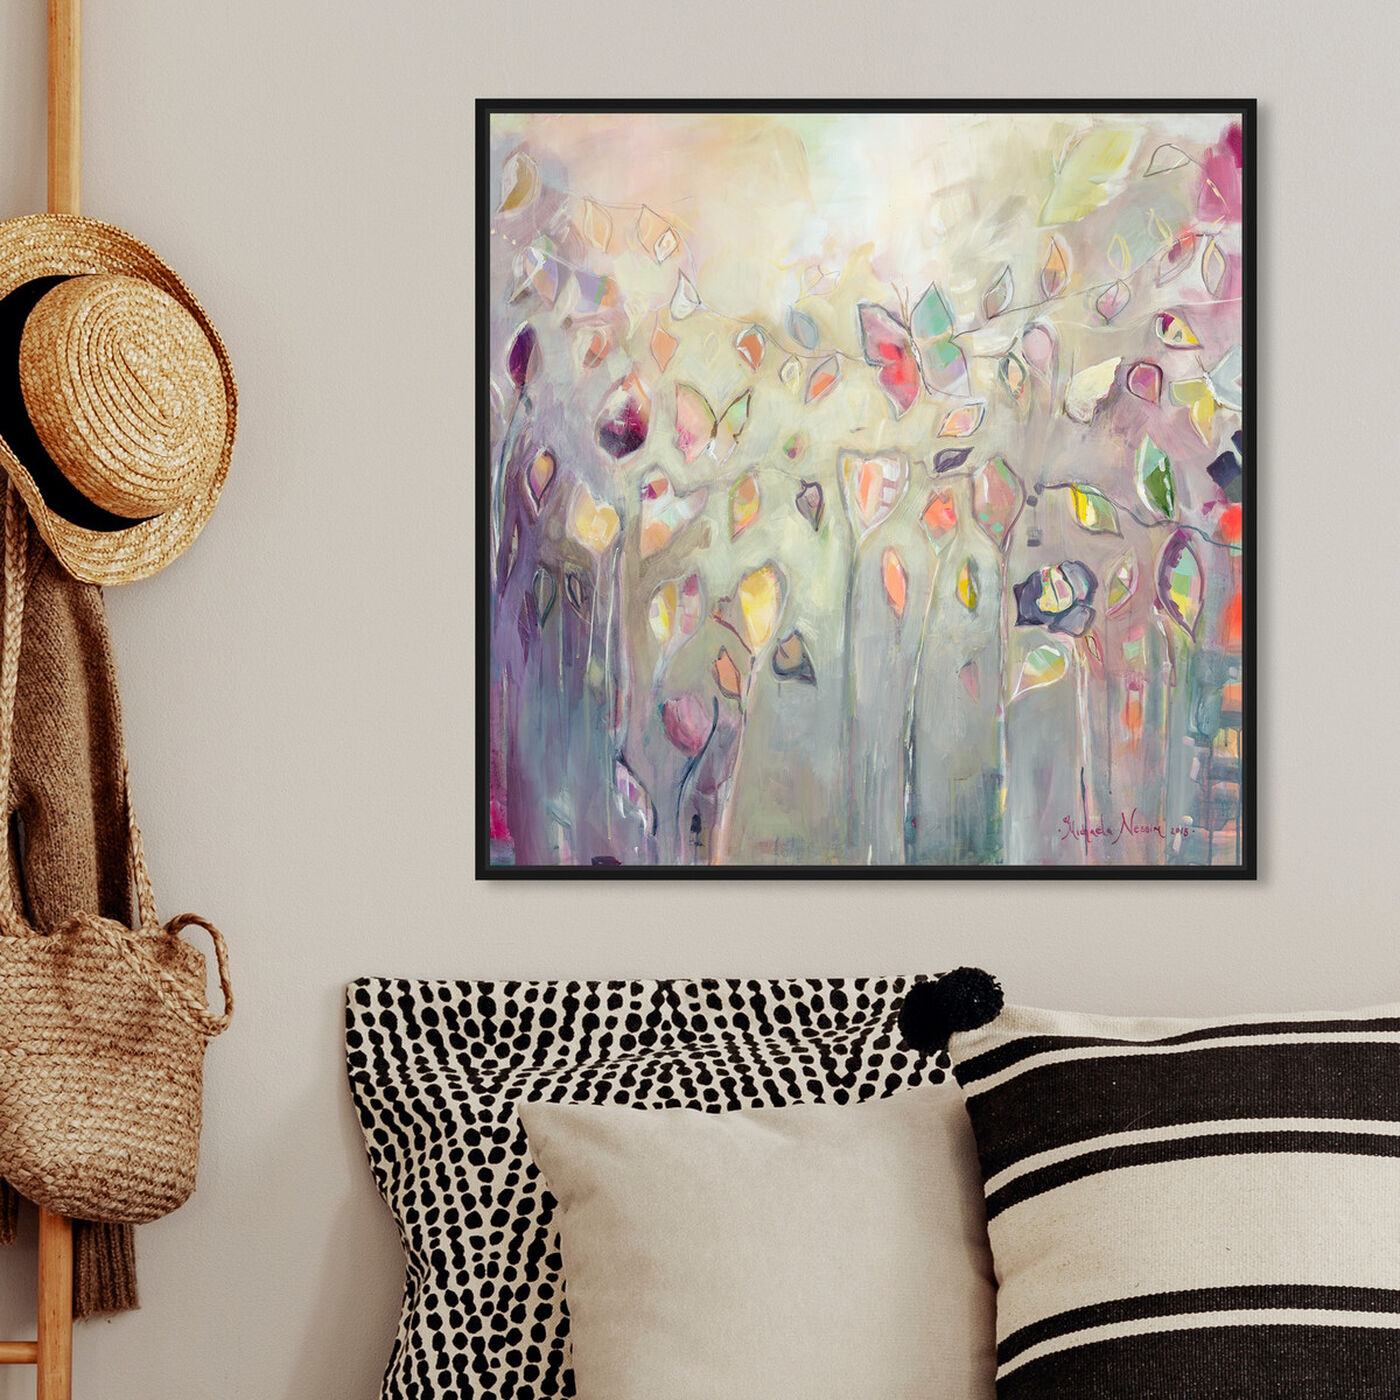 Hanging view of Butterfly Dance by Michaela Nessim Canvas Art featuring abstract and paint art.